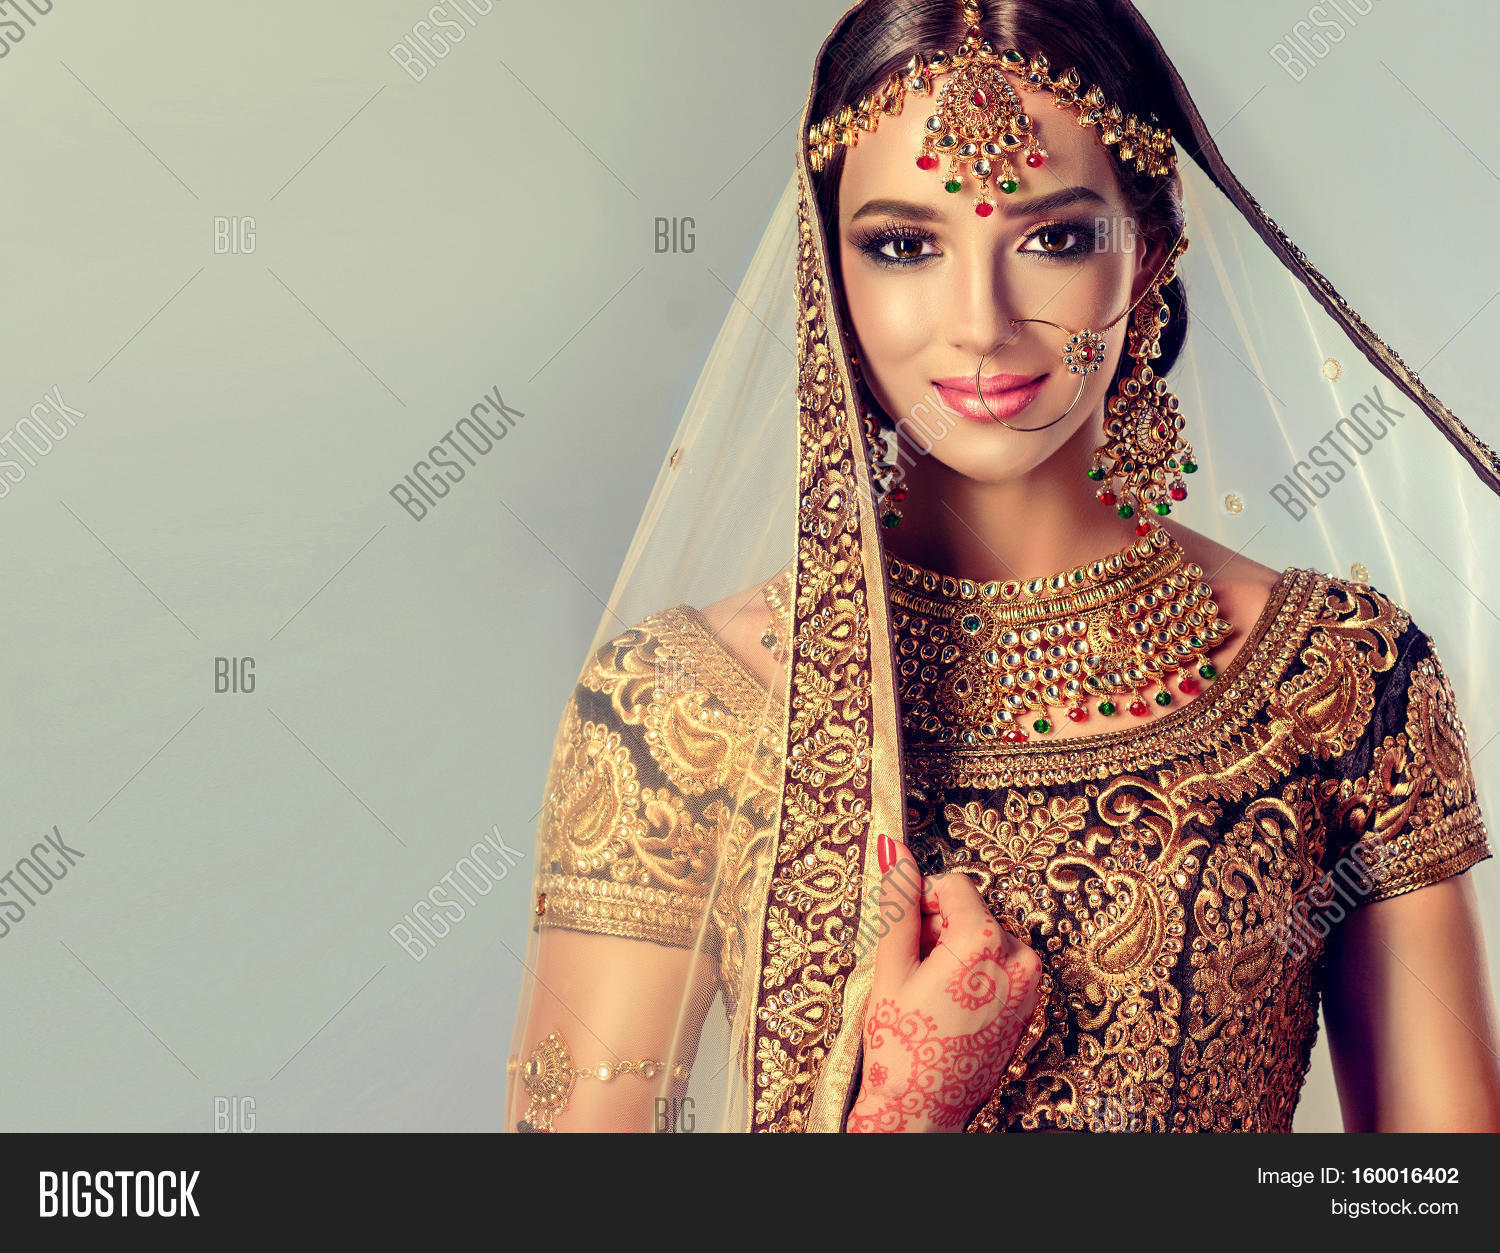 traditionally indian muslim girl images, illustrations, vectors